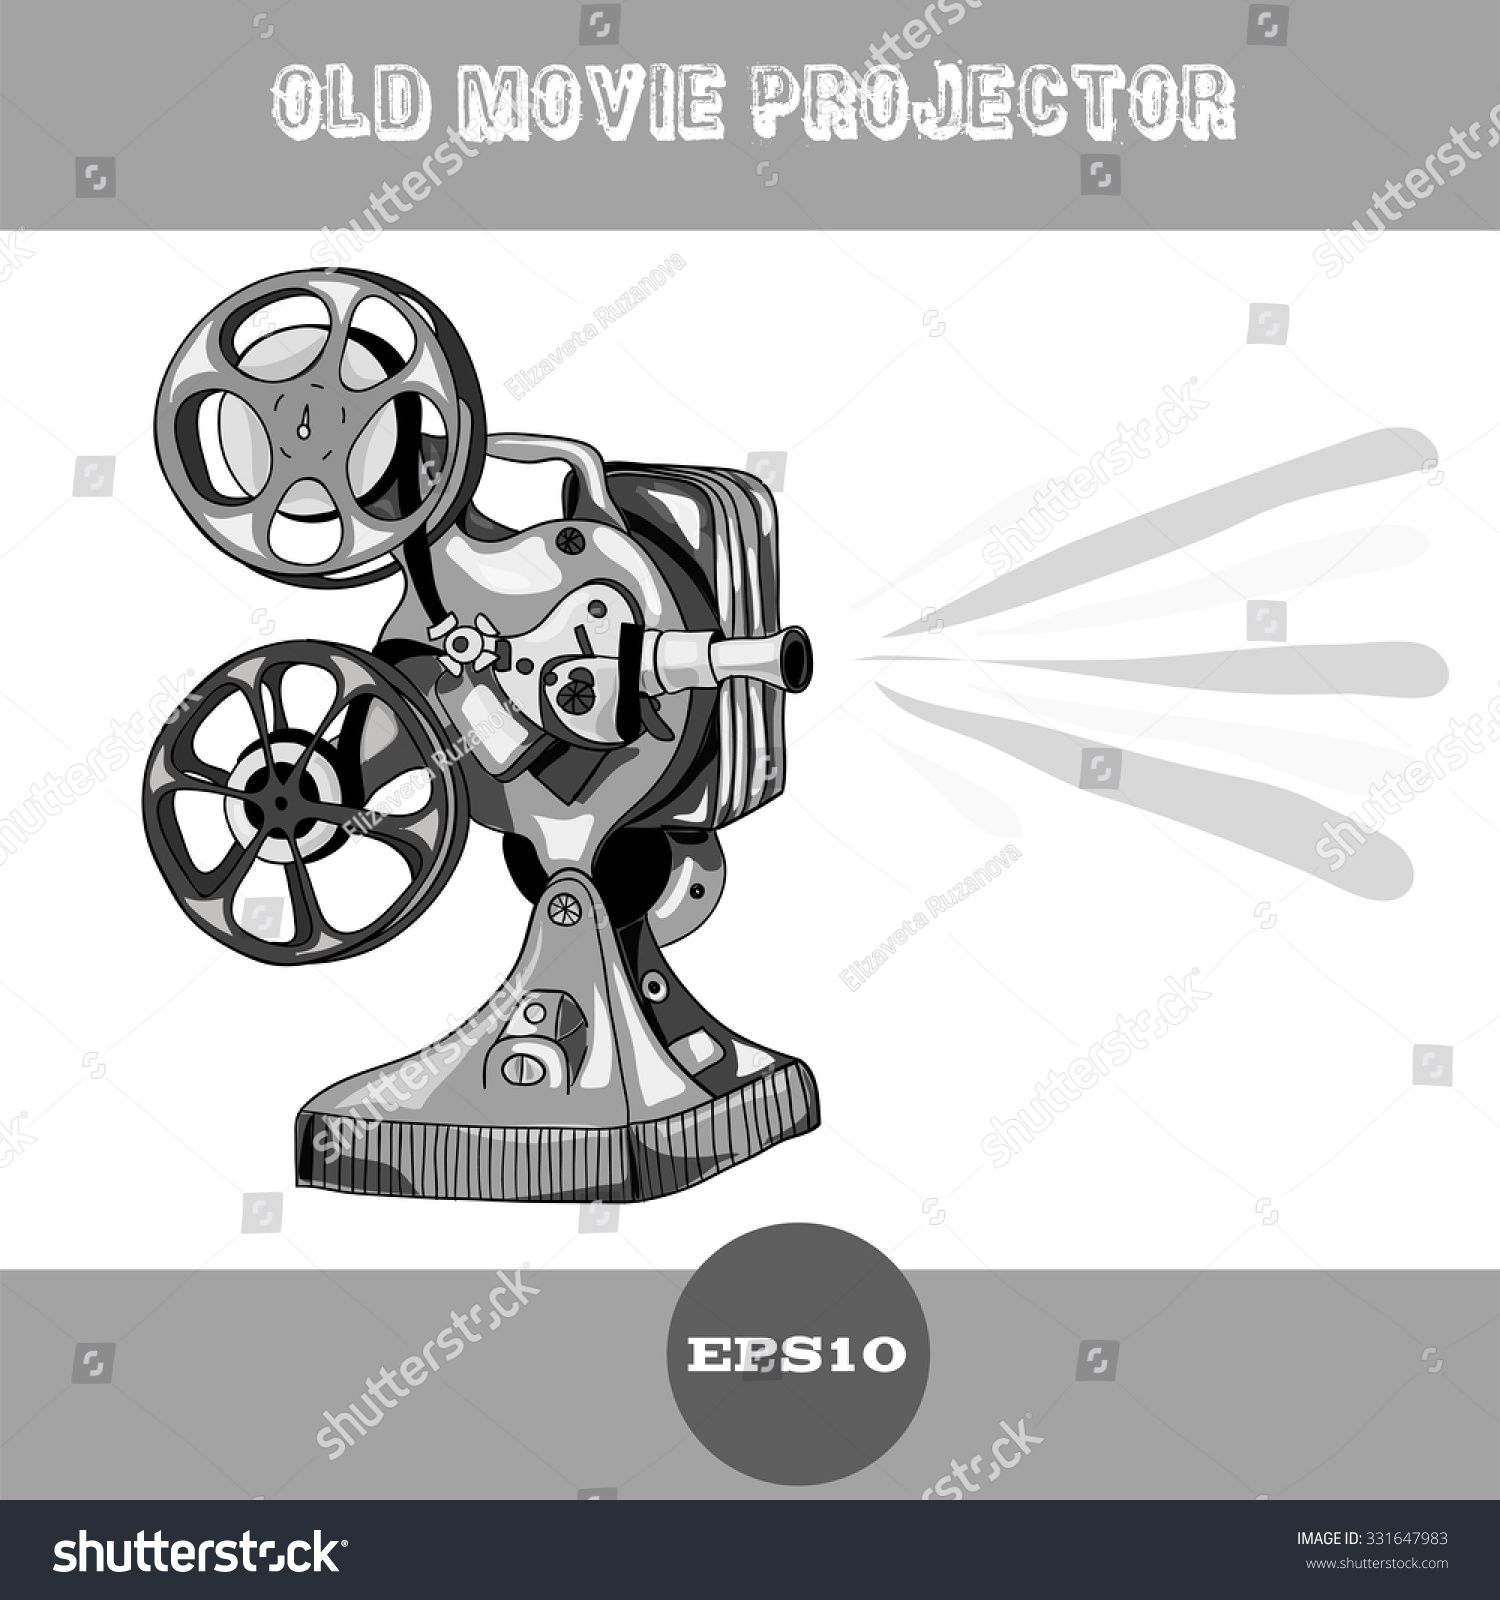 Old Movie Projector Vector Illustration On Stock Vector (Royalty